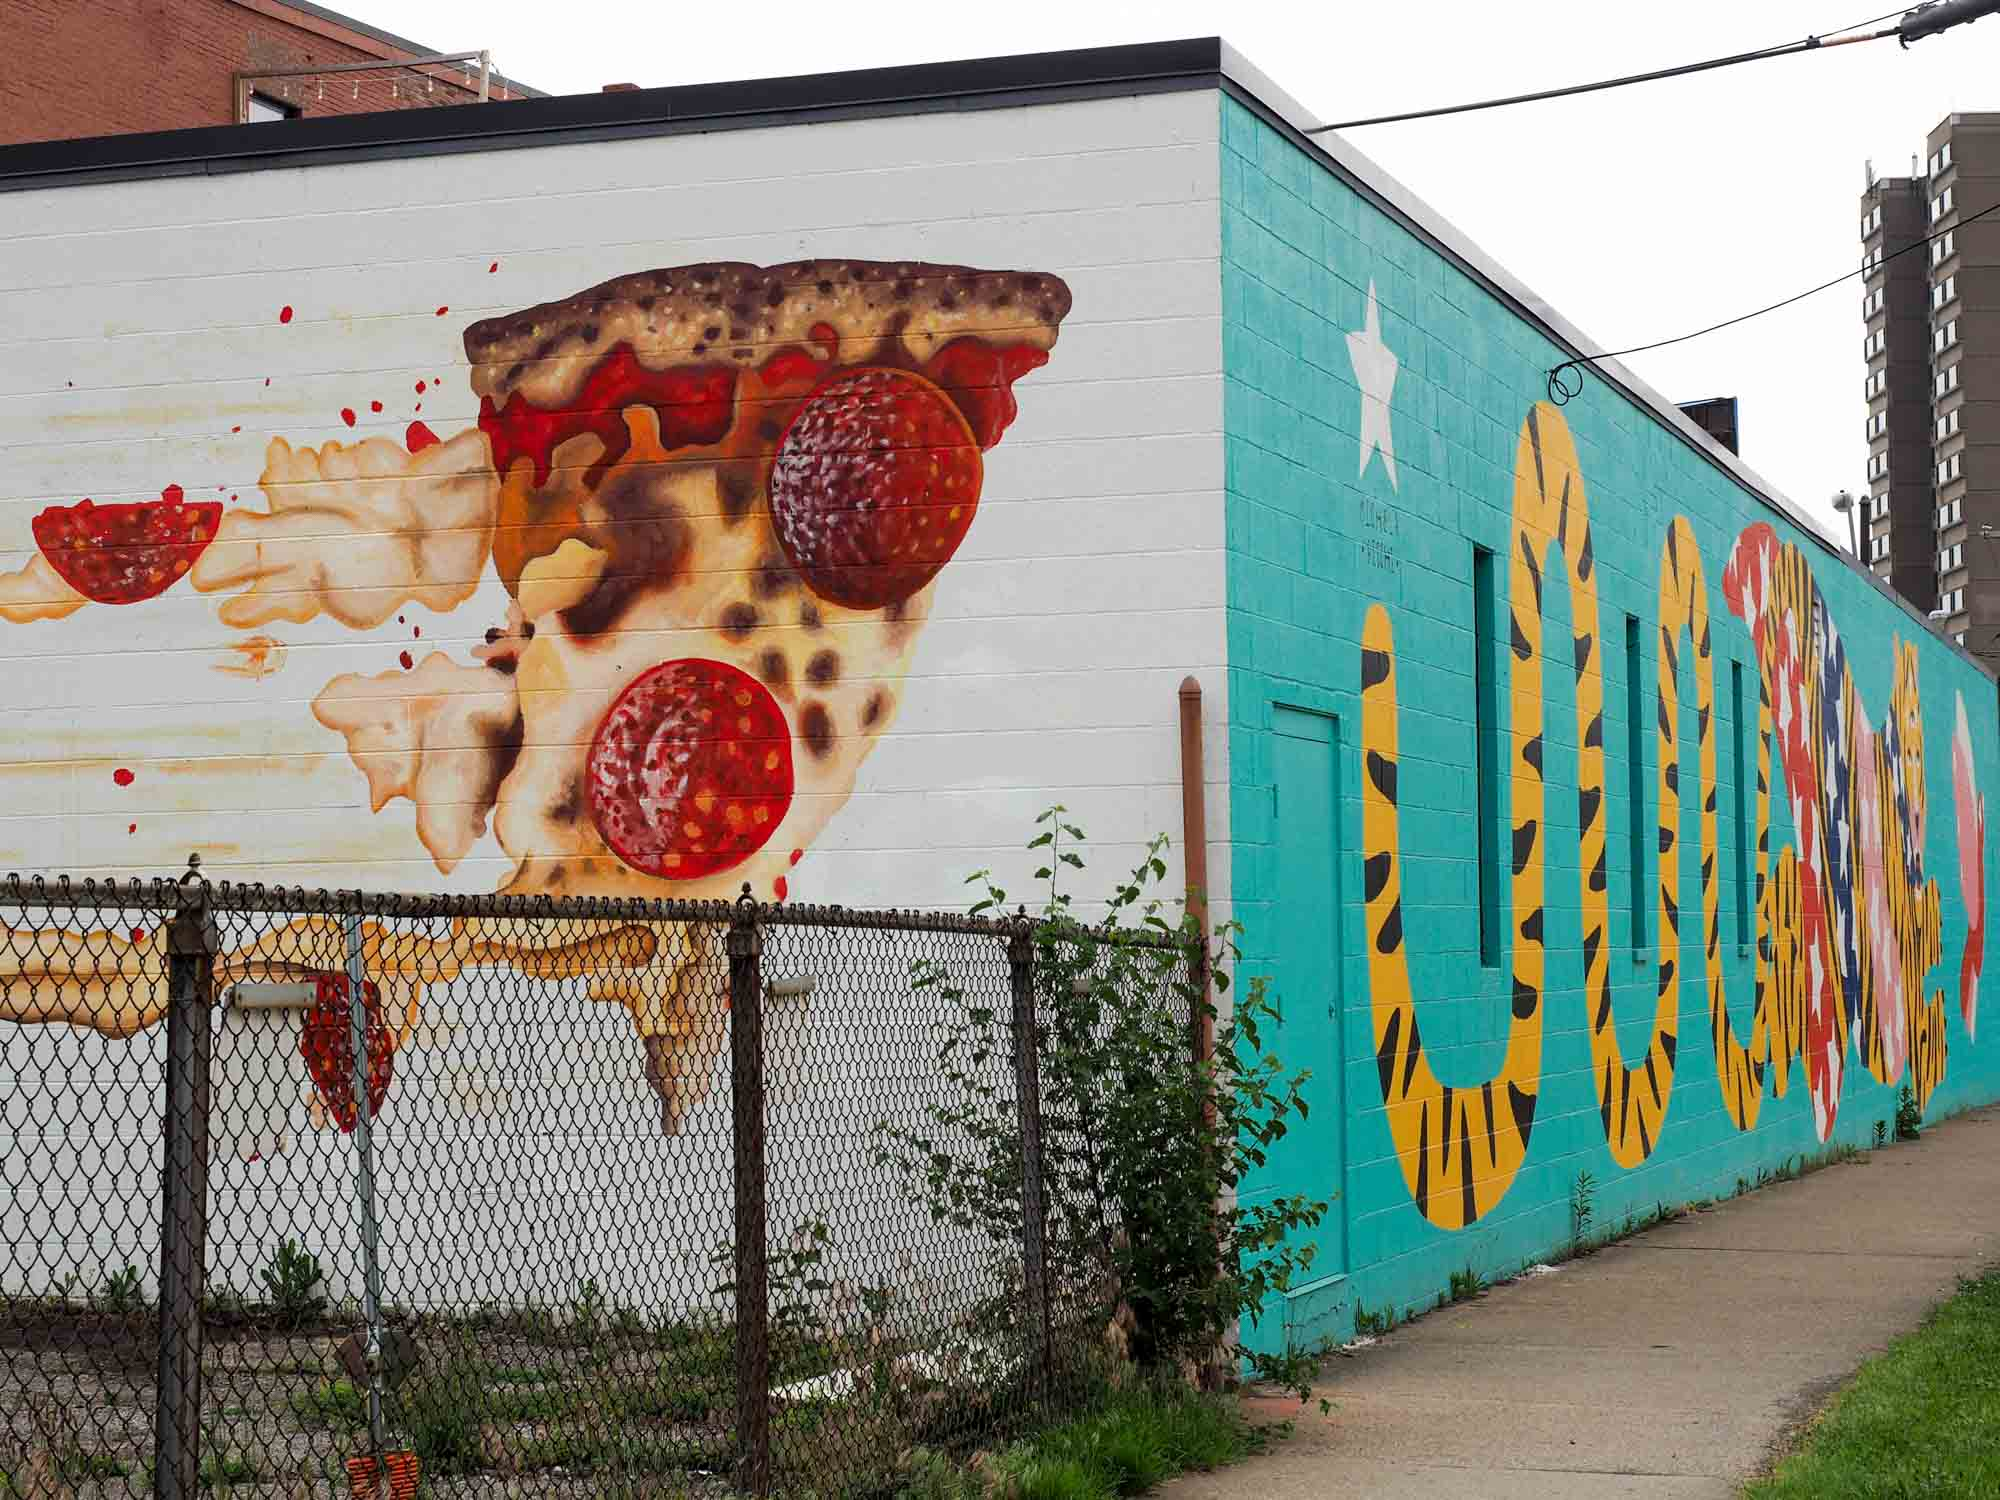 Cleveland Street Art: The Best Murals in Cleveland and Where to Find Them